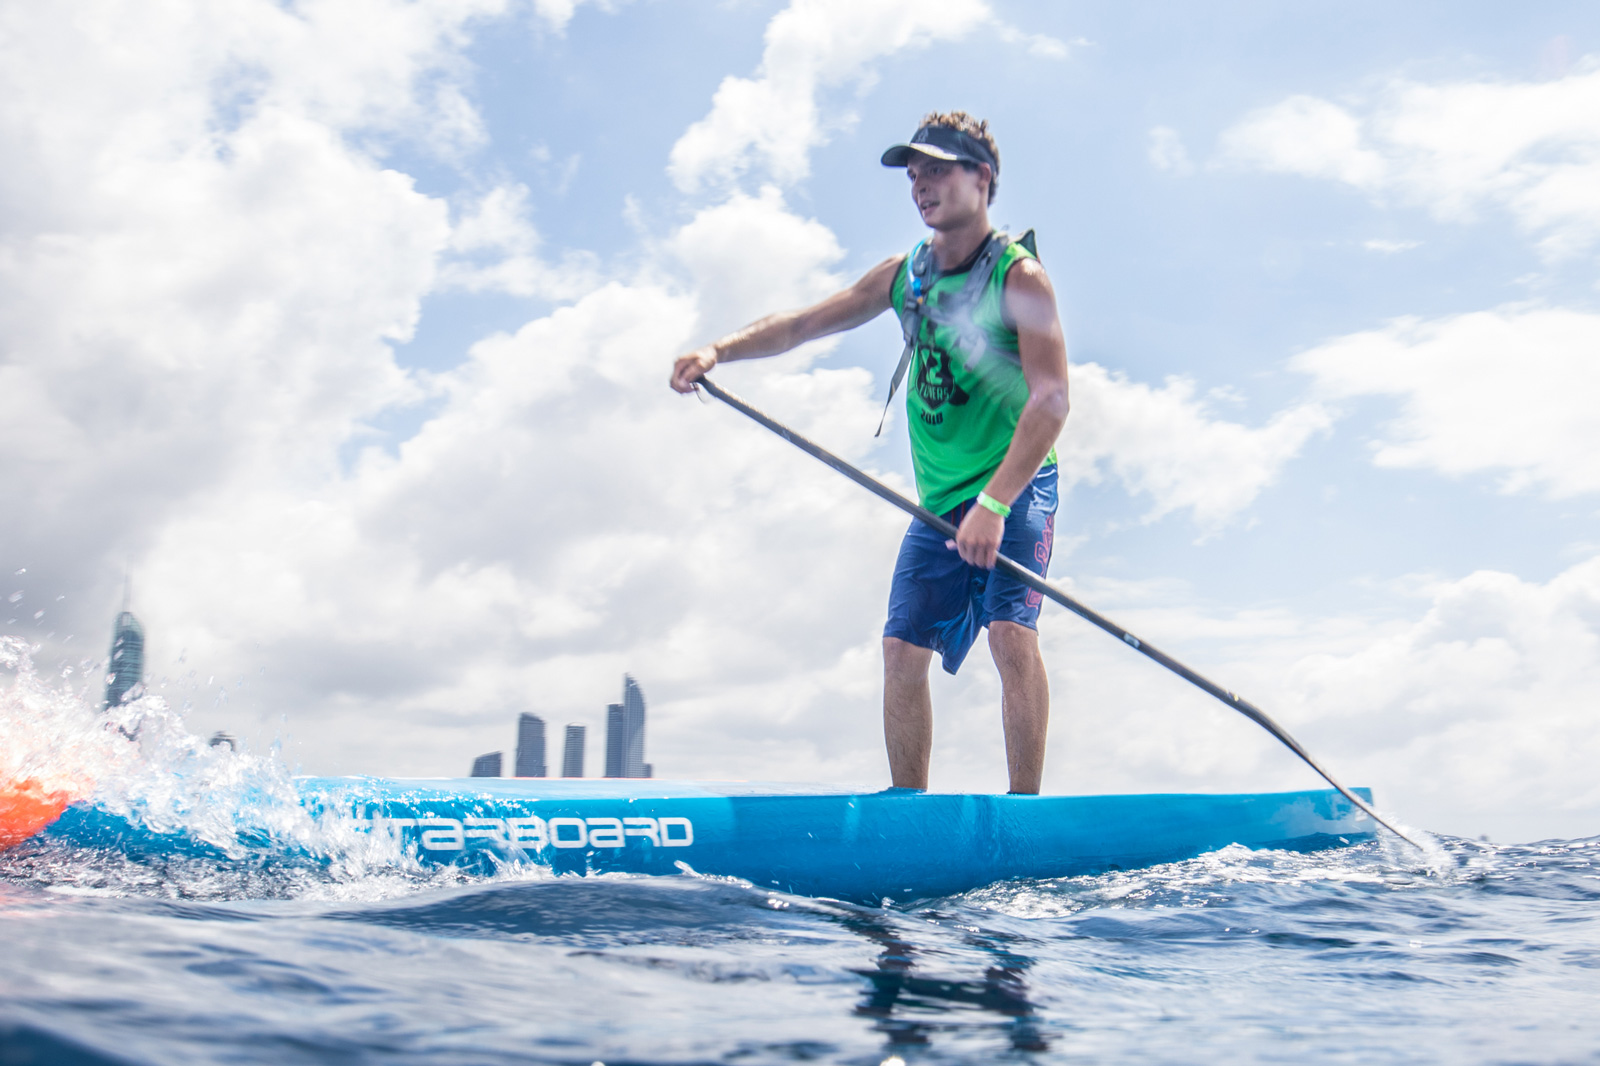 Starboard-12-Towers-2018-SUP-race-clement-colmas-new-caledonia-2